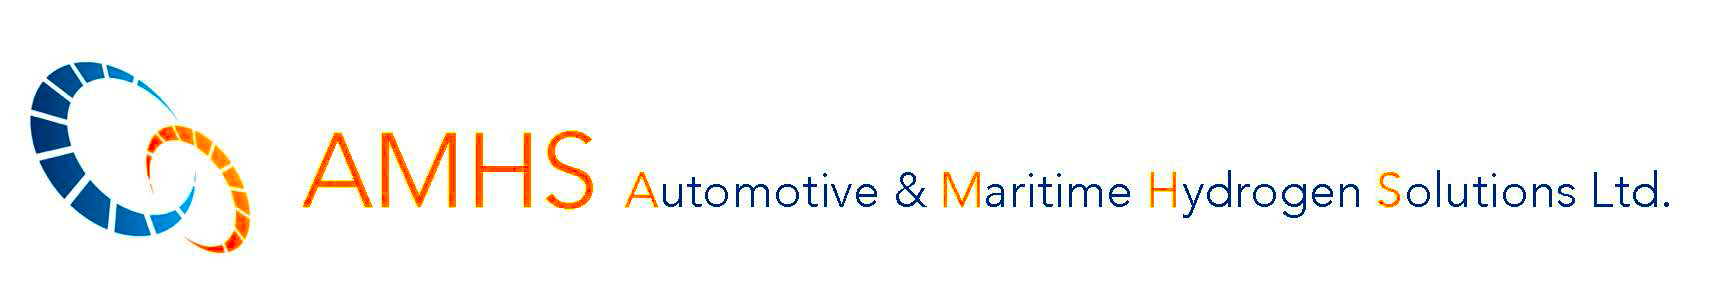 VN-Automotive Ltd